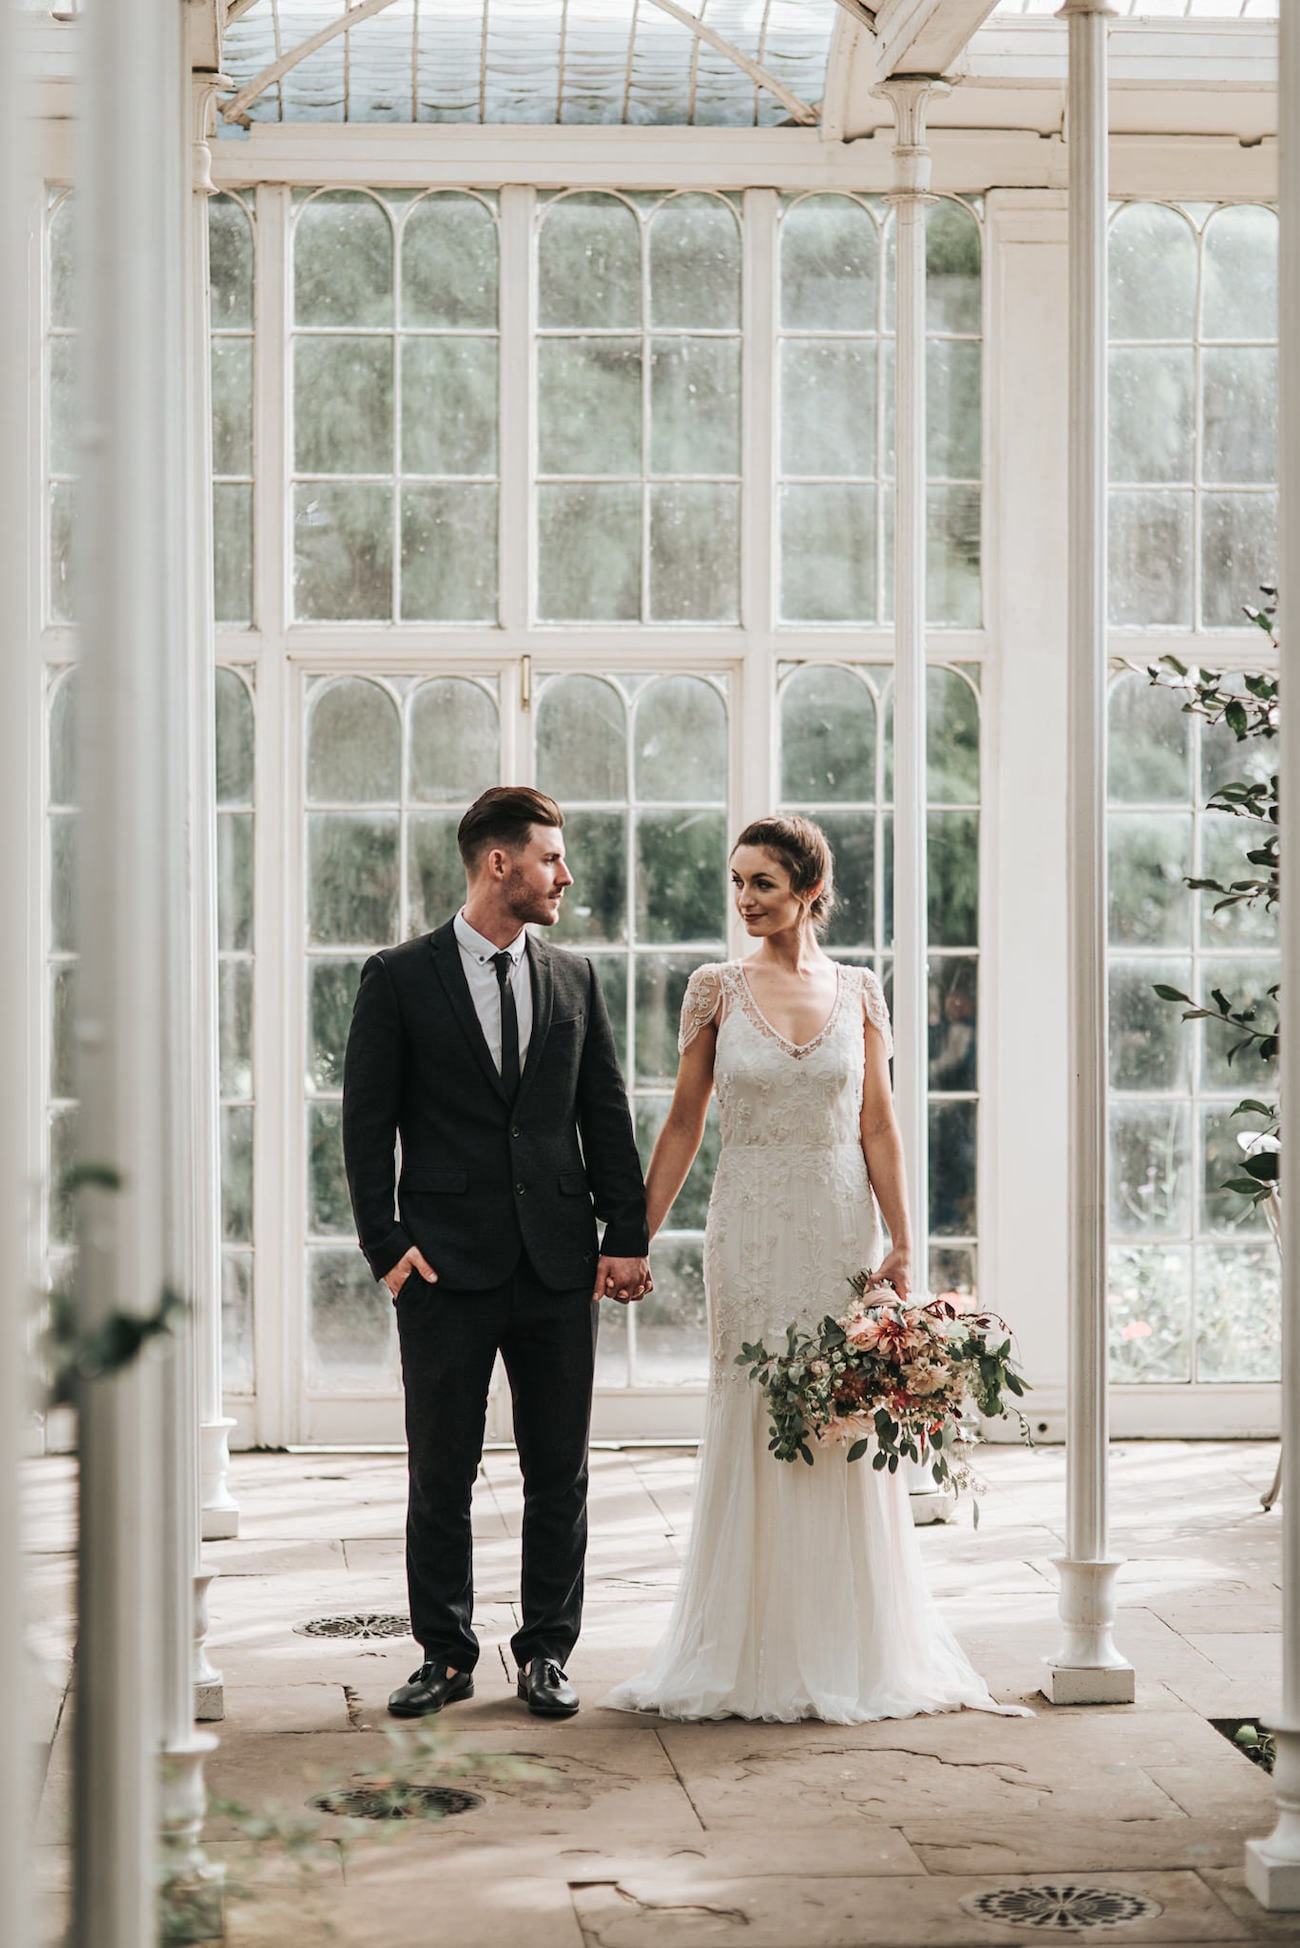 Greenhouse Romance Wedding Inspiration Bride & Groom | Image: Pear & Bear Photography